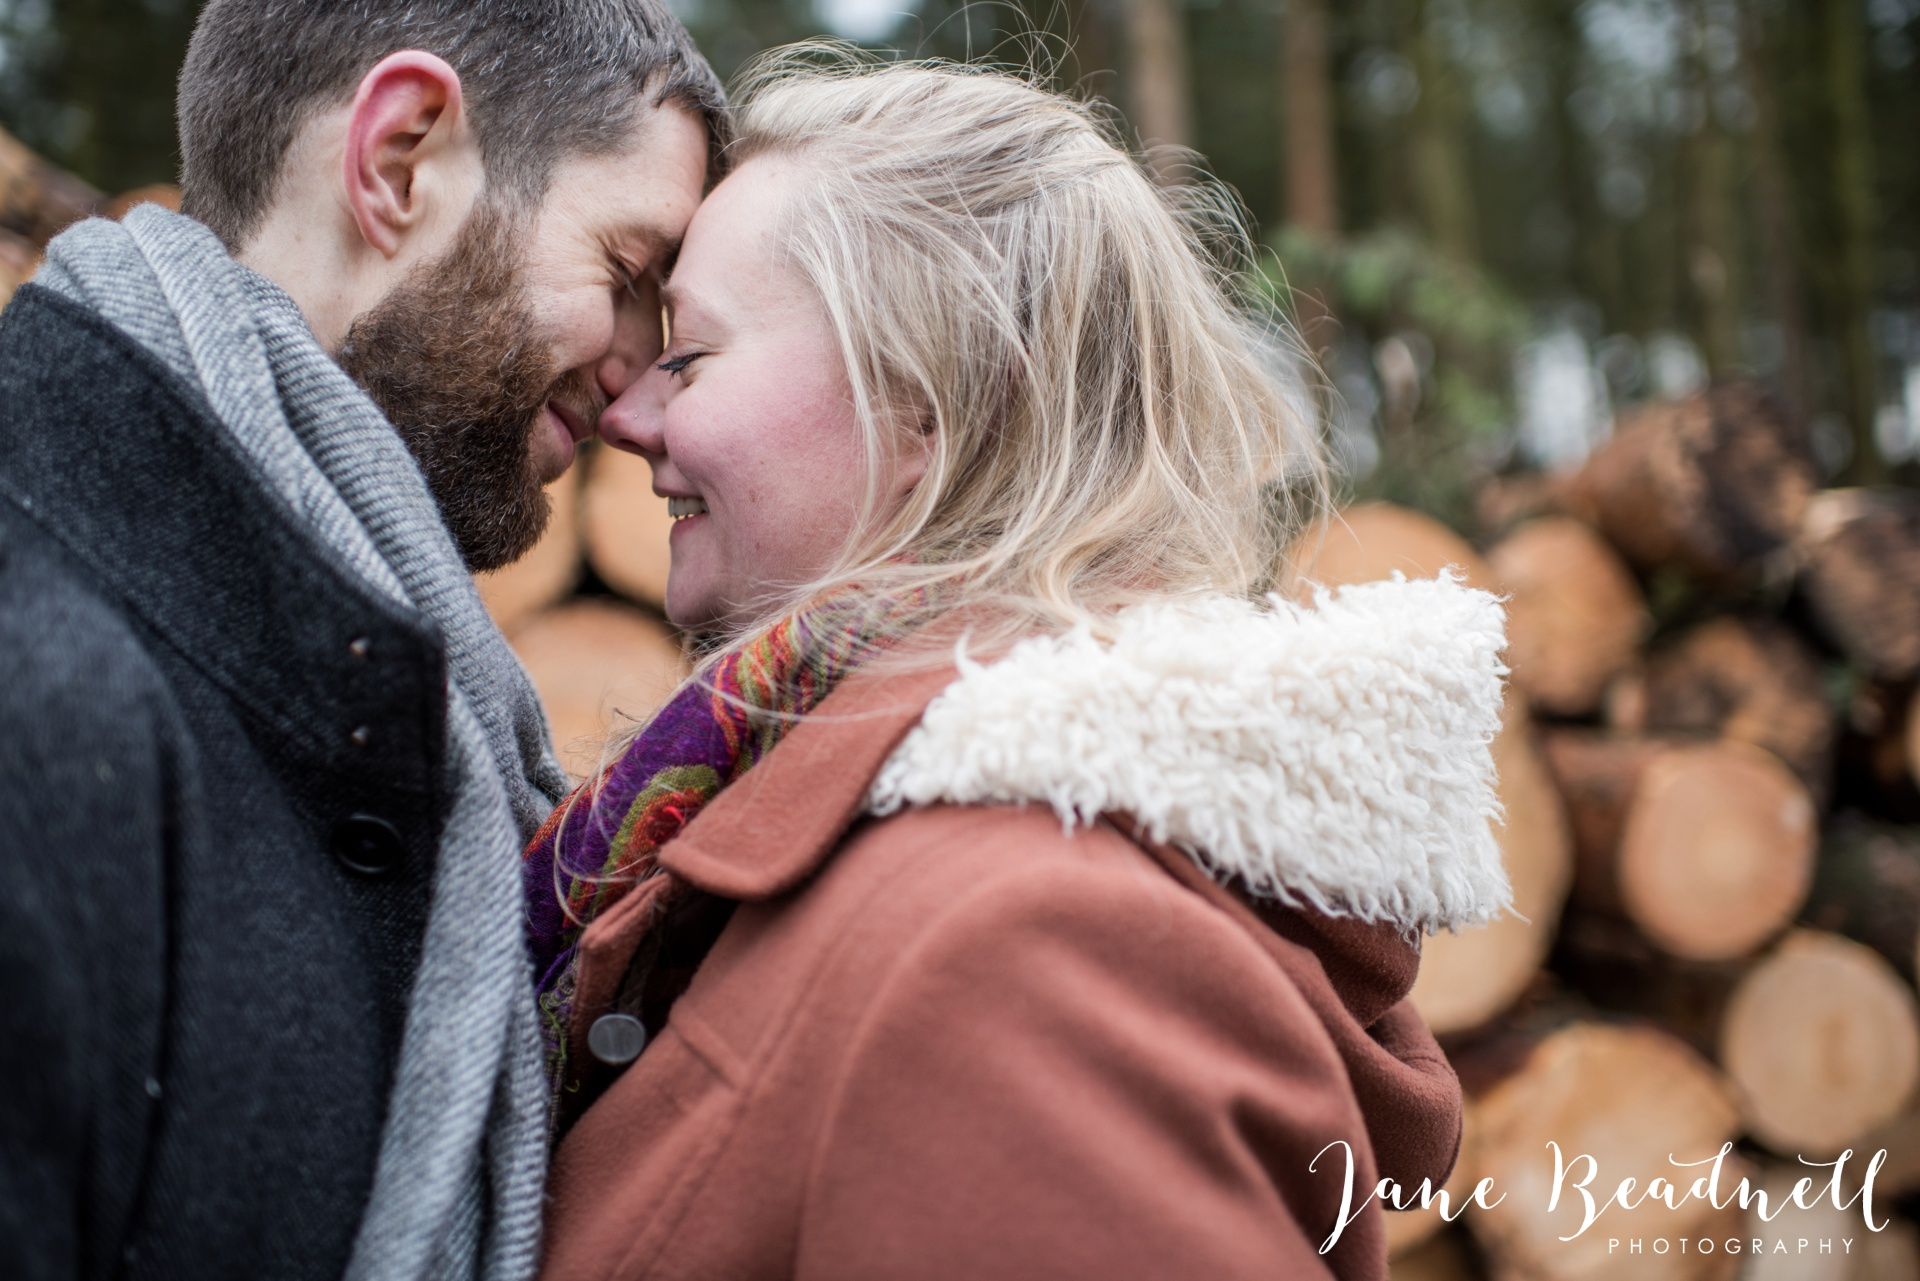 engagement photography Chevin jane beadnell wedding photographer Otley_0038